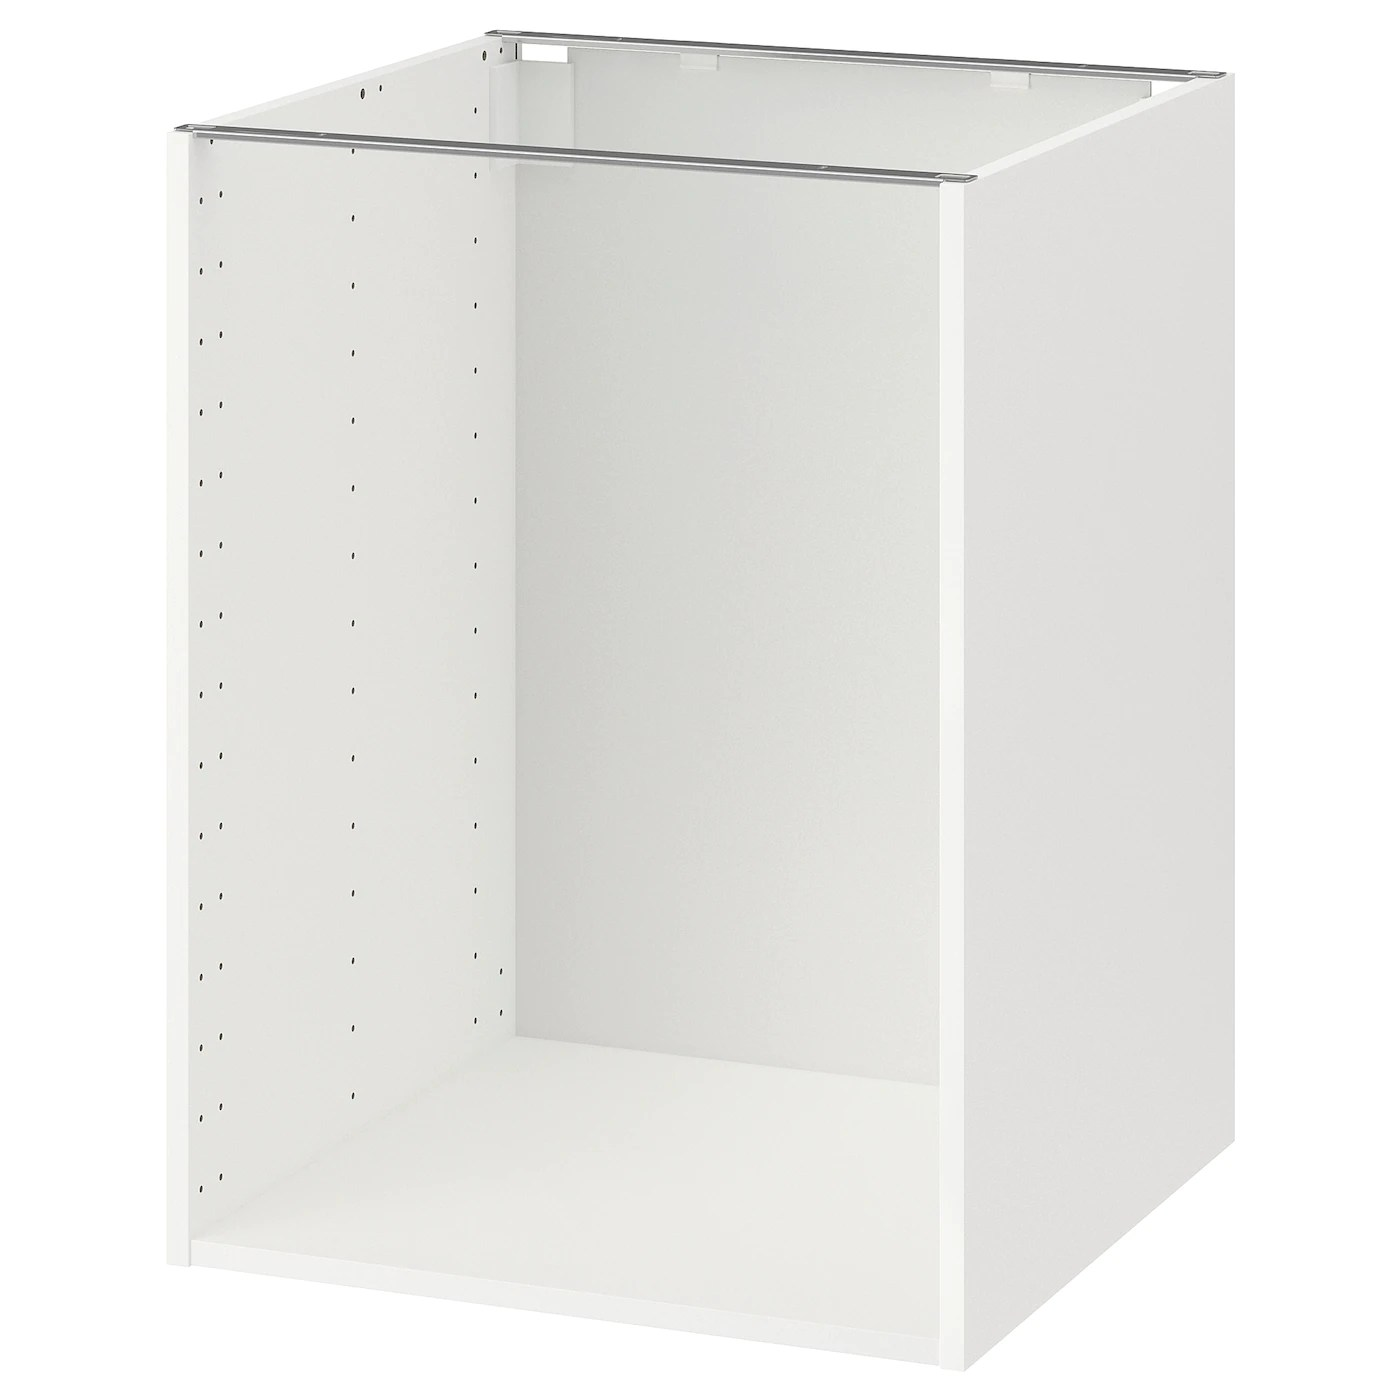 Ikea Method Metod Base Cabinet Frame White